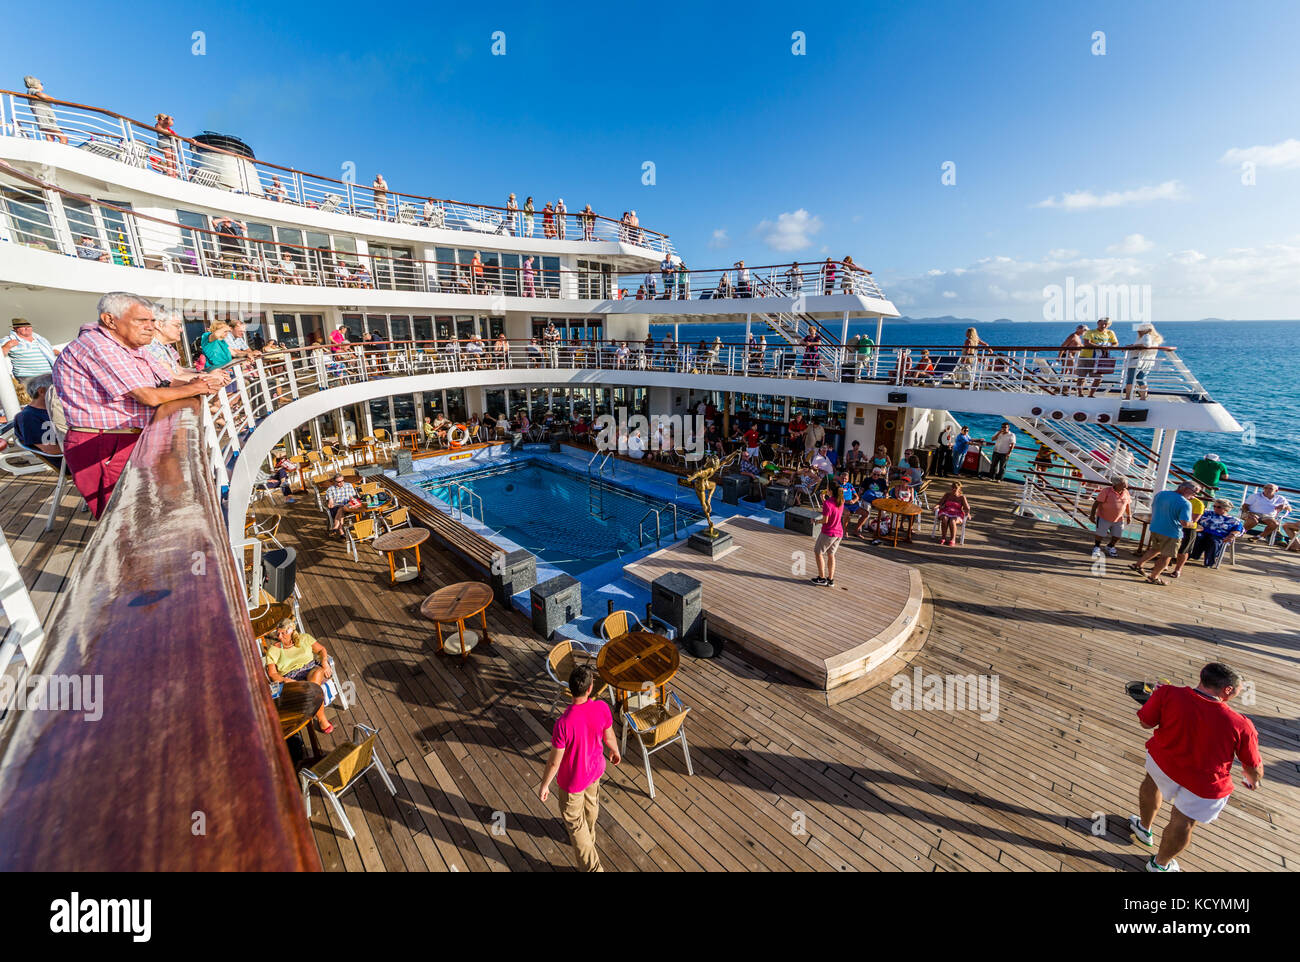 Deck party on the MV Marco Polo as it leaves Tortola - Stock Image